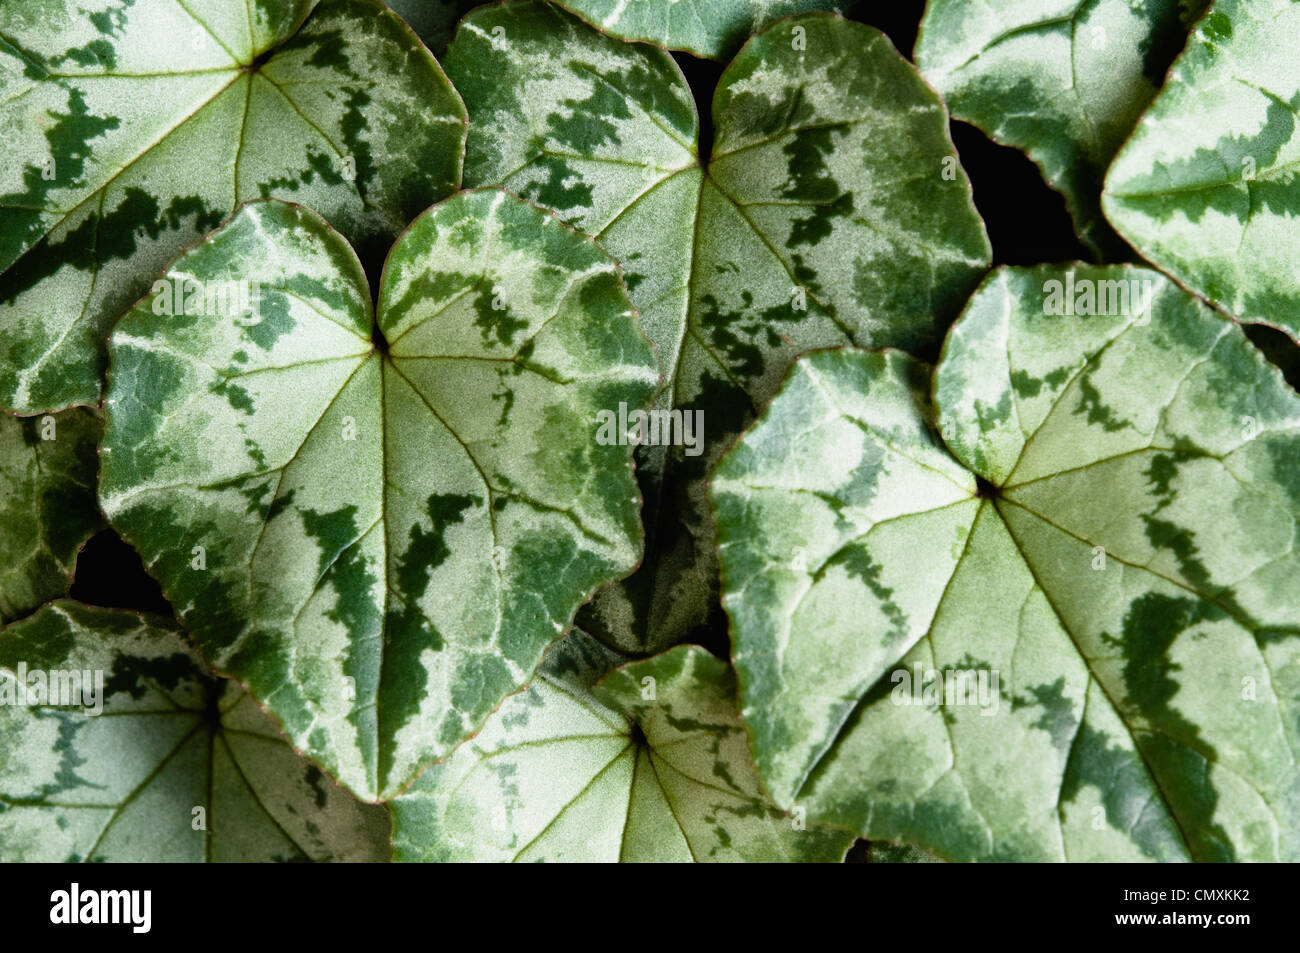 A close up view of the attractive foliage / green marbling pattern of cyclamen leaves. (Cyclamen hederifolium) - Stock Image